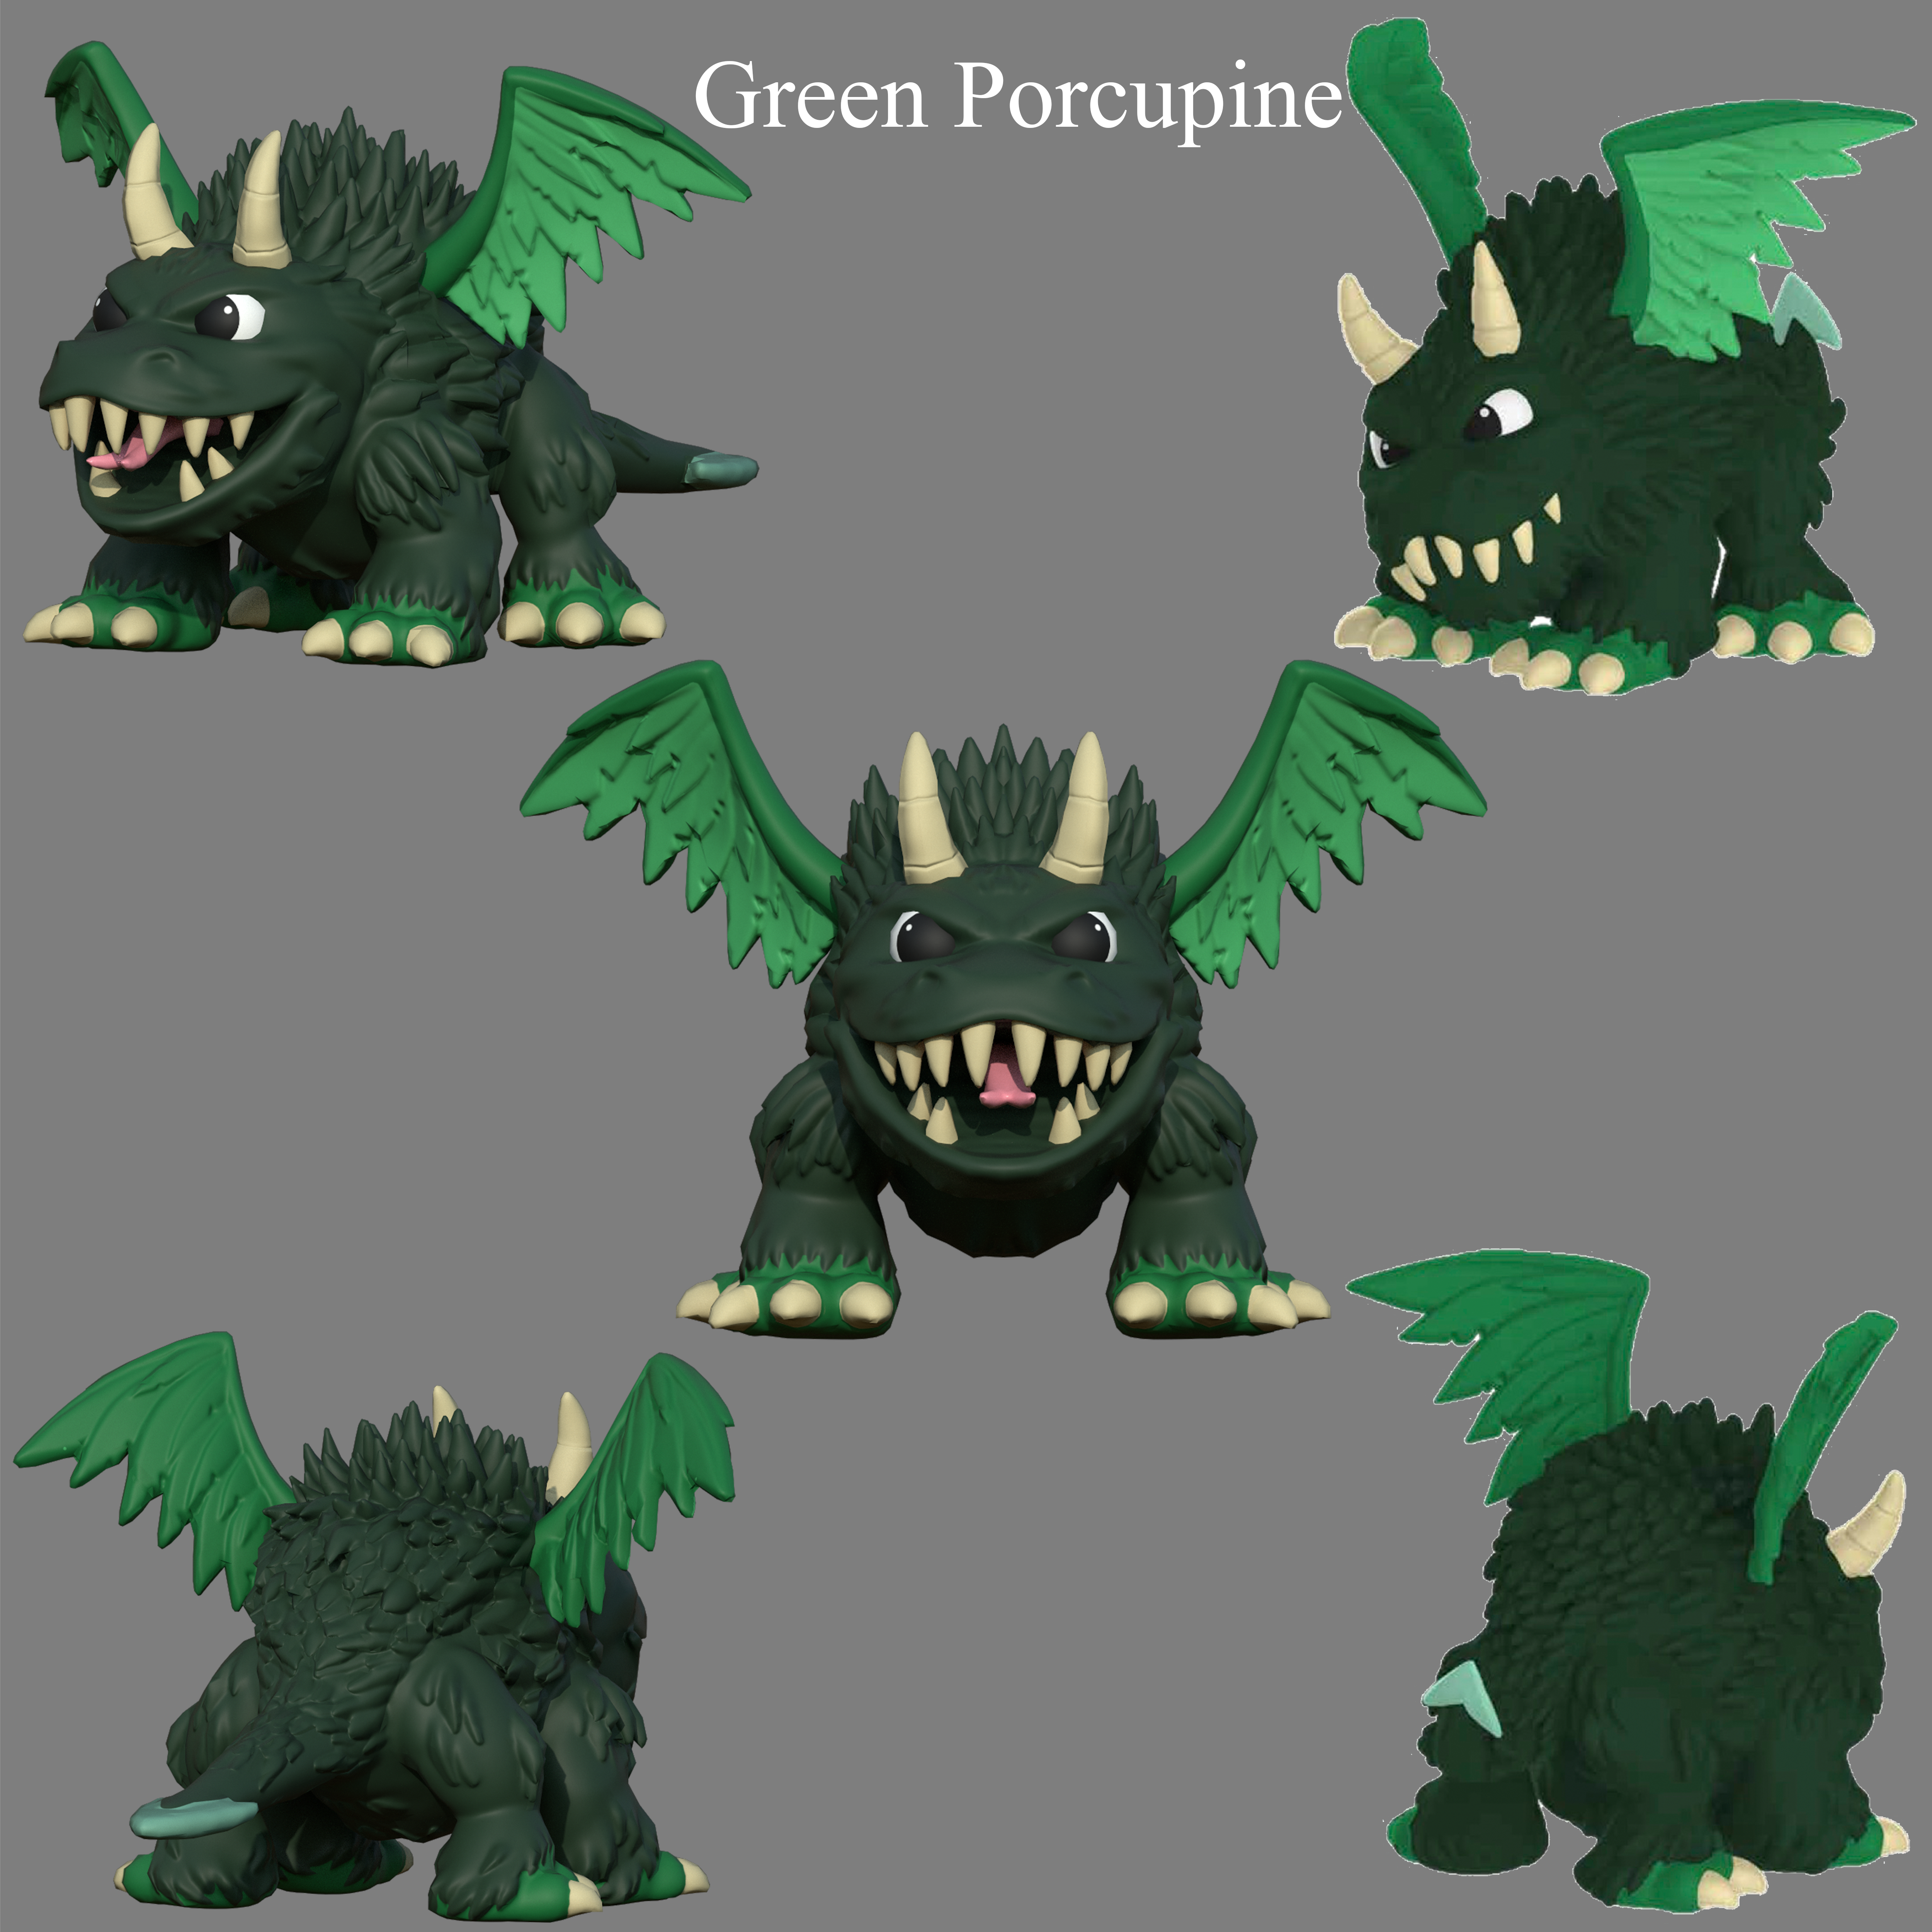 Green Porcupine